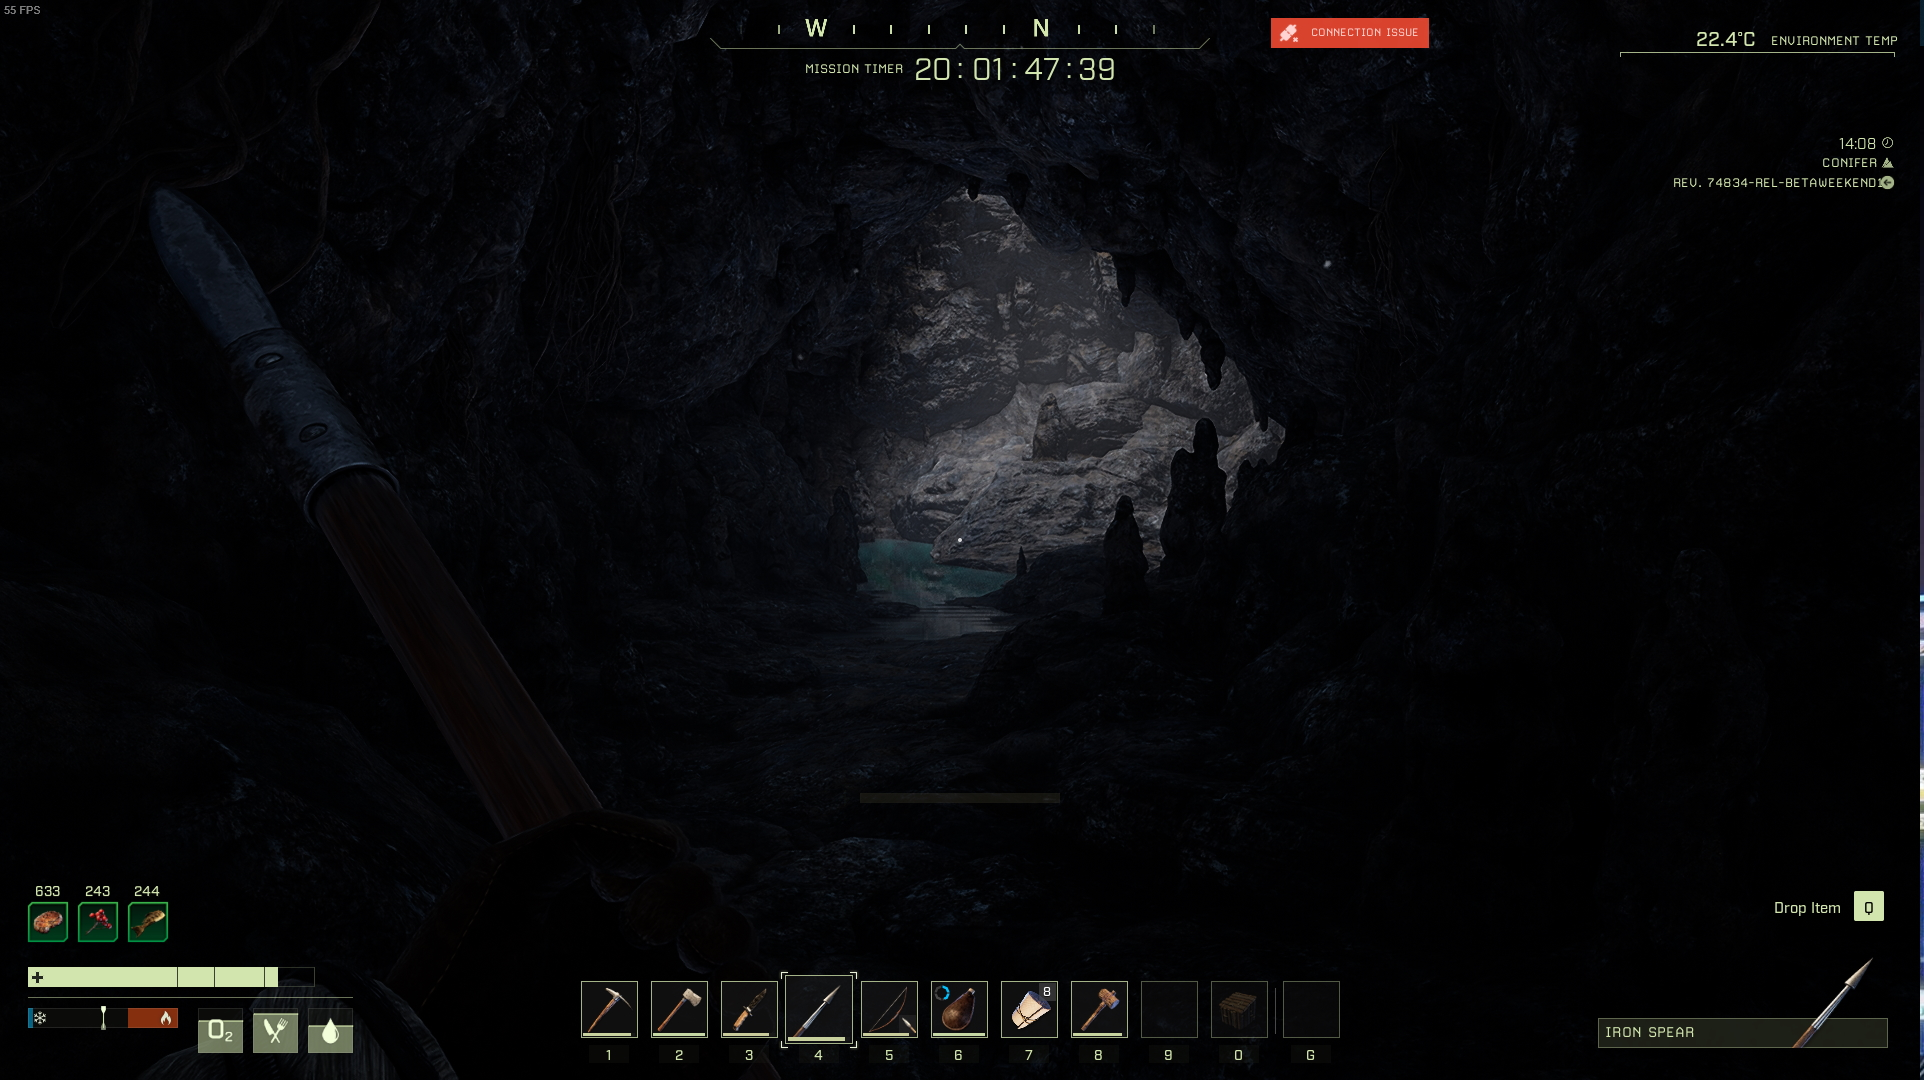 Icarus Beta - All Cave Locations Map Guide Details - Cave Images: - 7D83E18